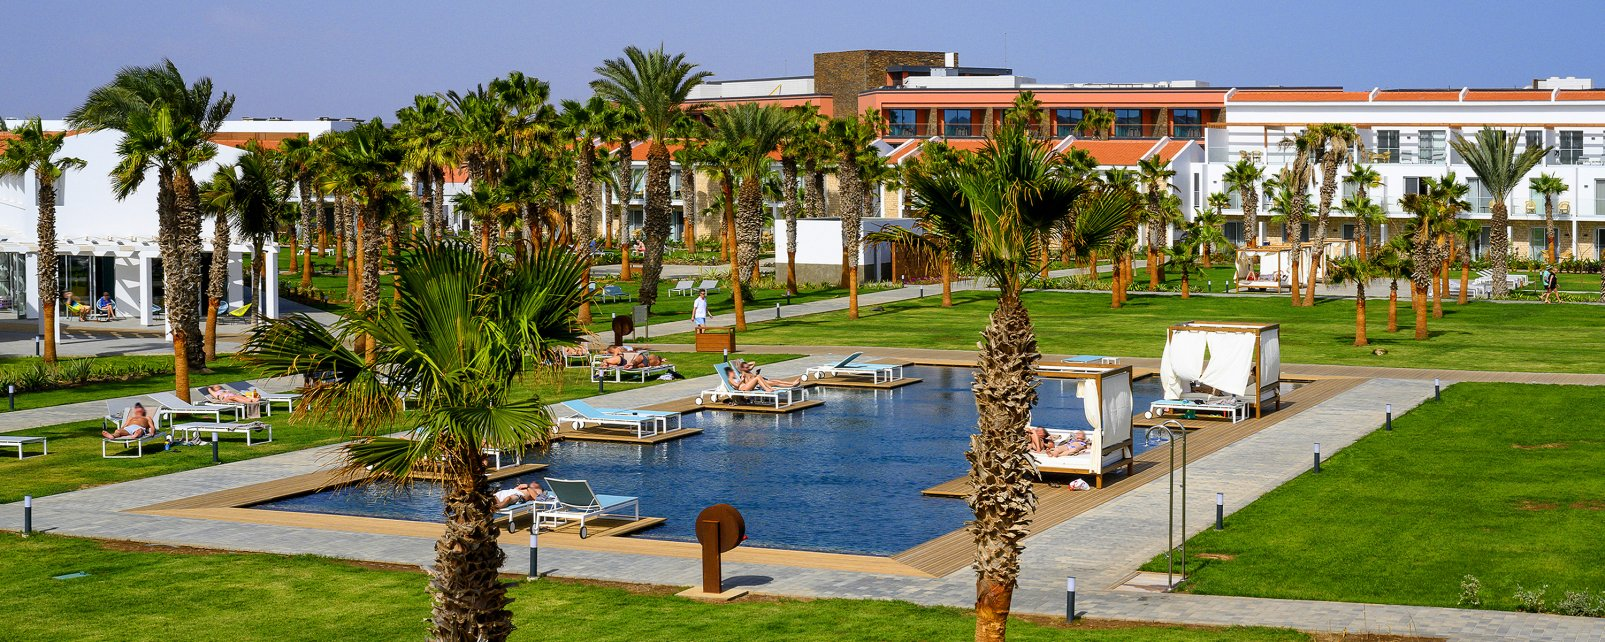 Hôtel Crioula Club Resort